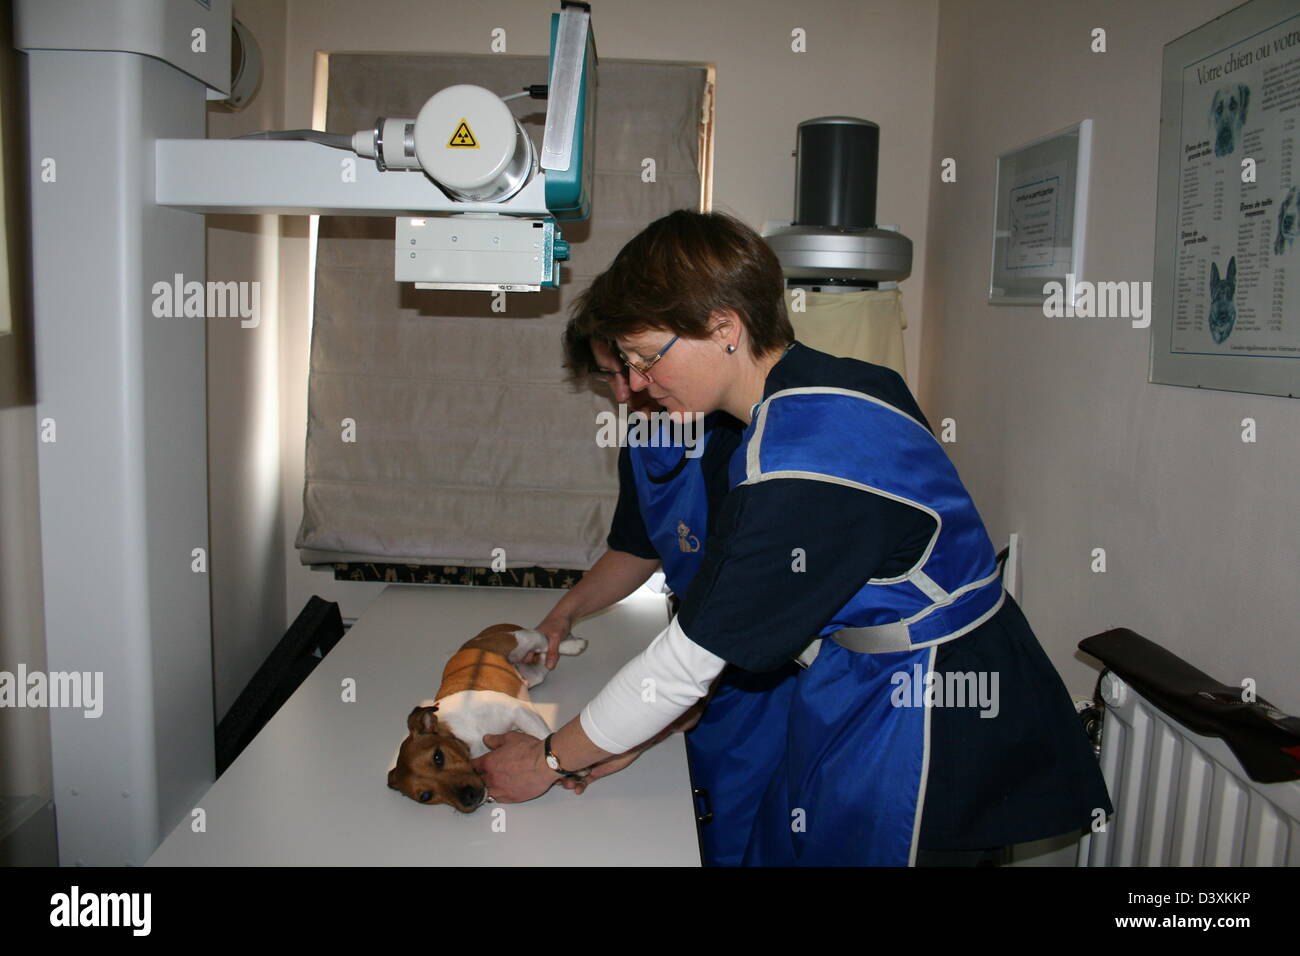 A Jack Russel Terrier dog receiving an x-ray by a veterinarian - Stock Image